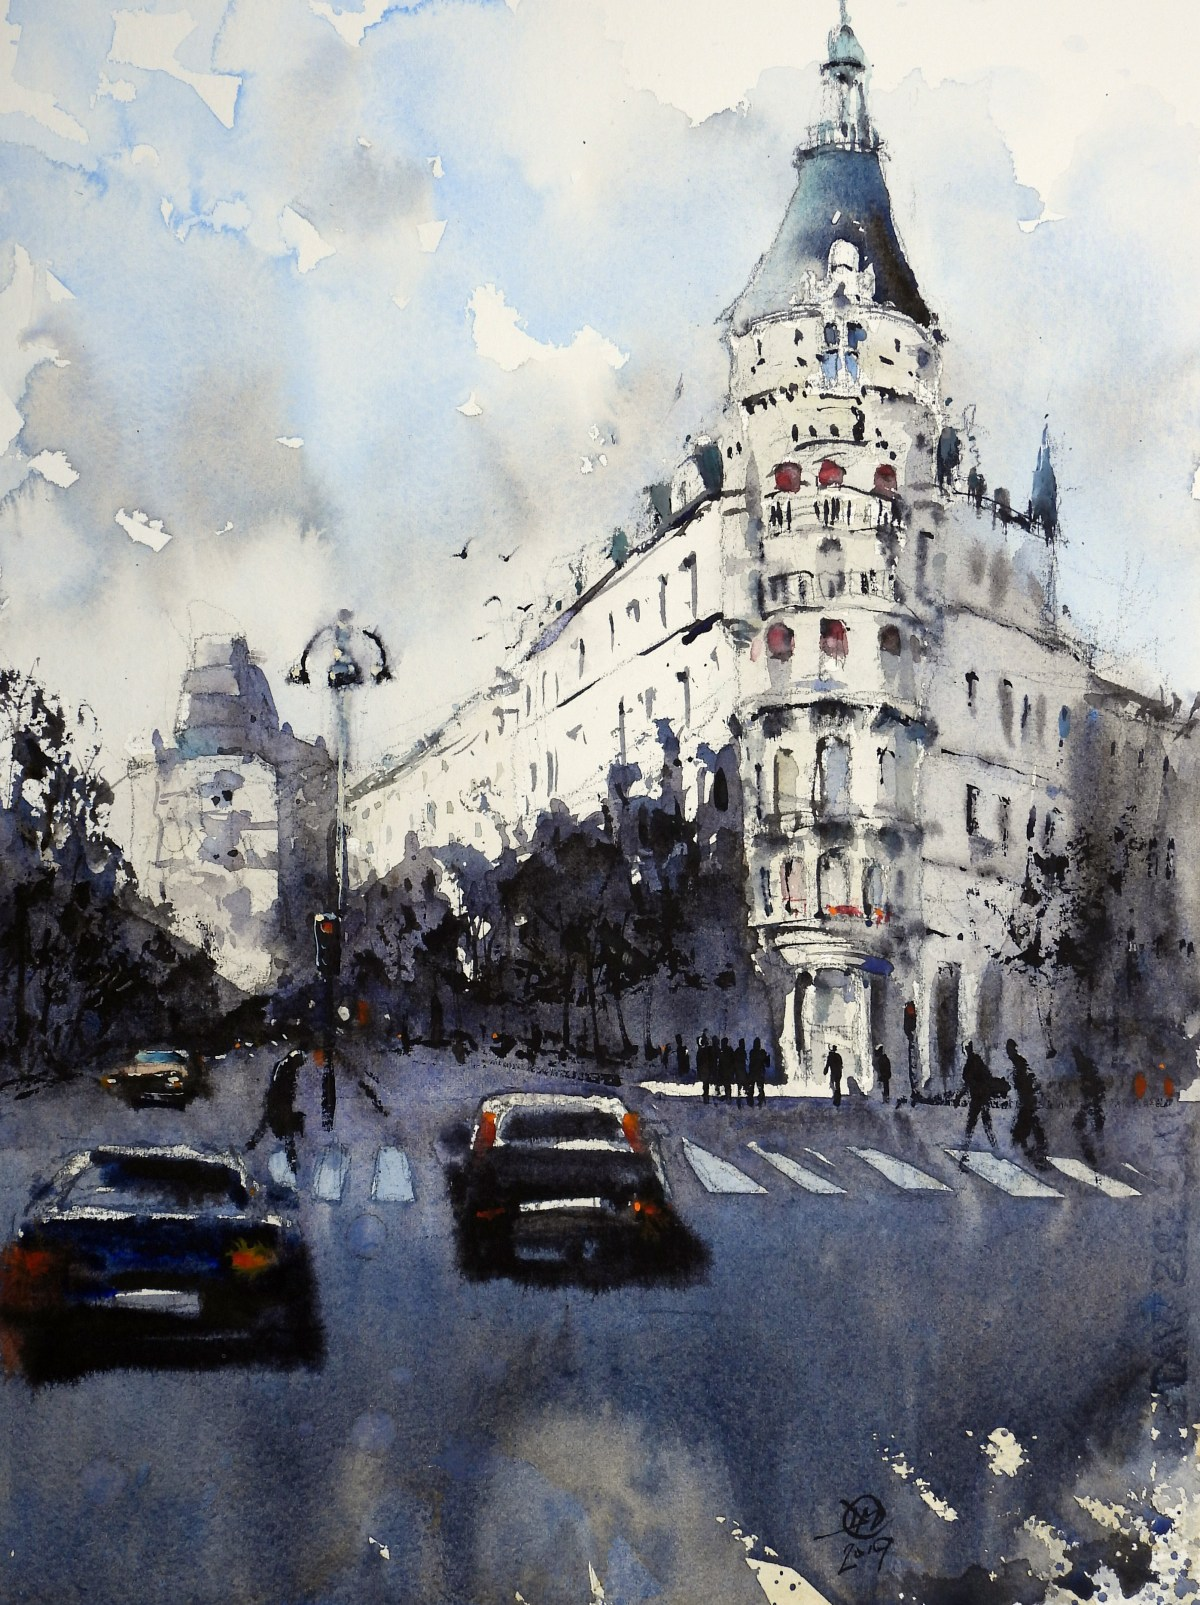 Watercolour of Birger Jarlsgatan, Stockholm